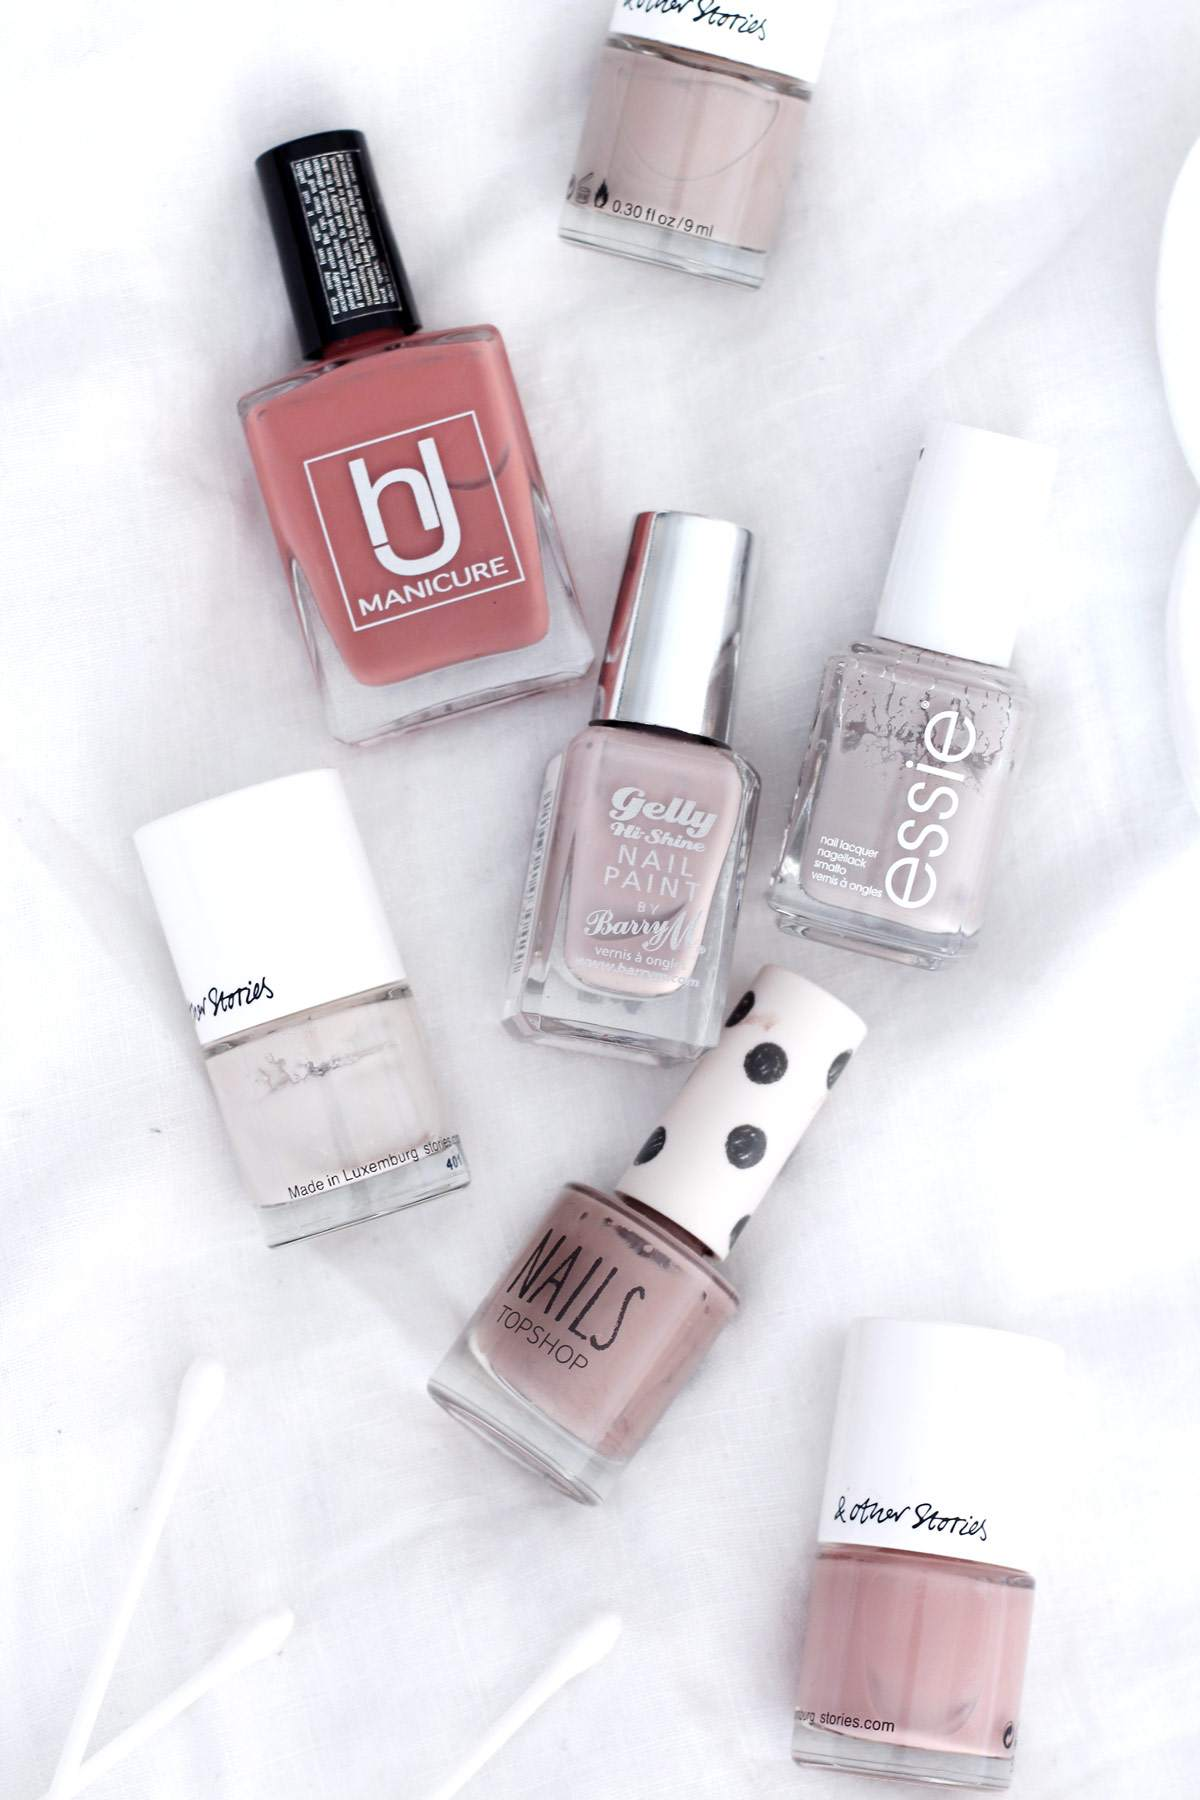 nude-nail-polish-best-of-HJ-manicure-coco-beauty-review-1